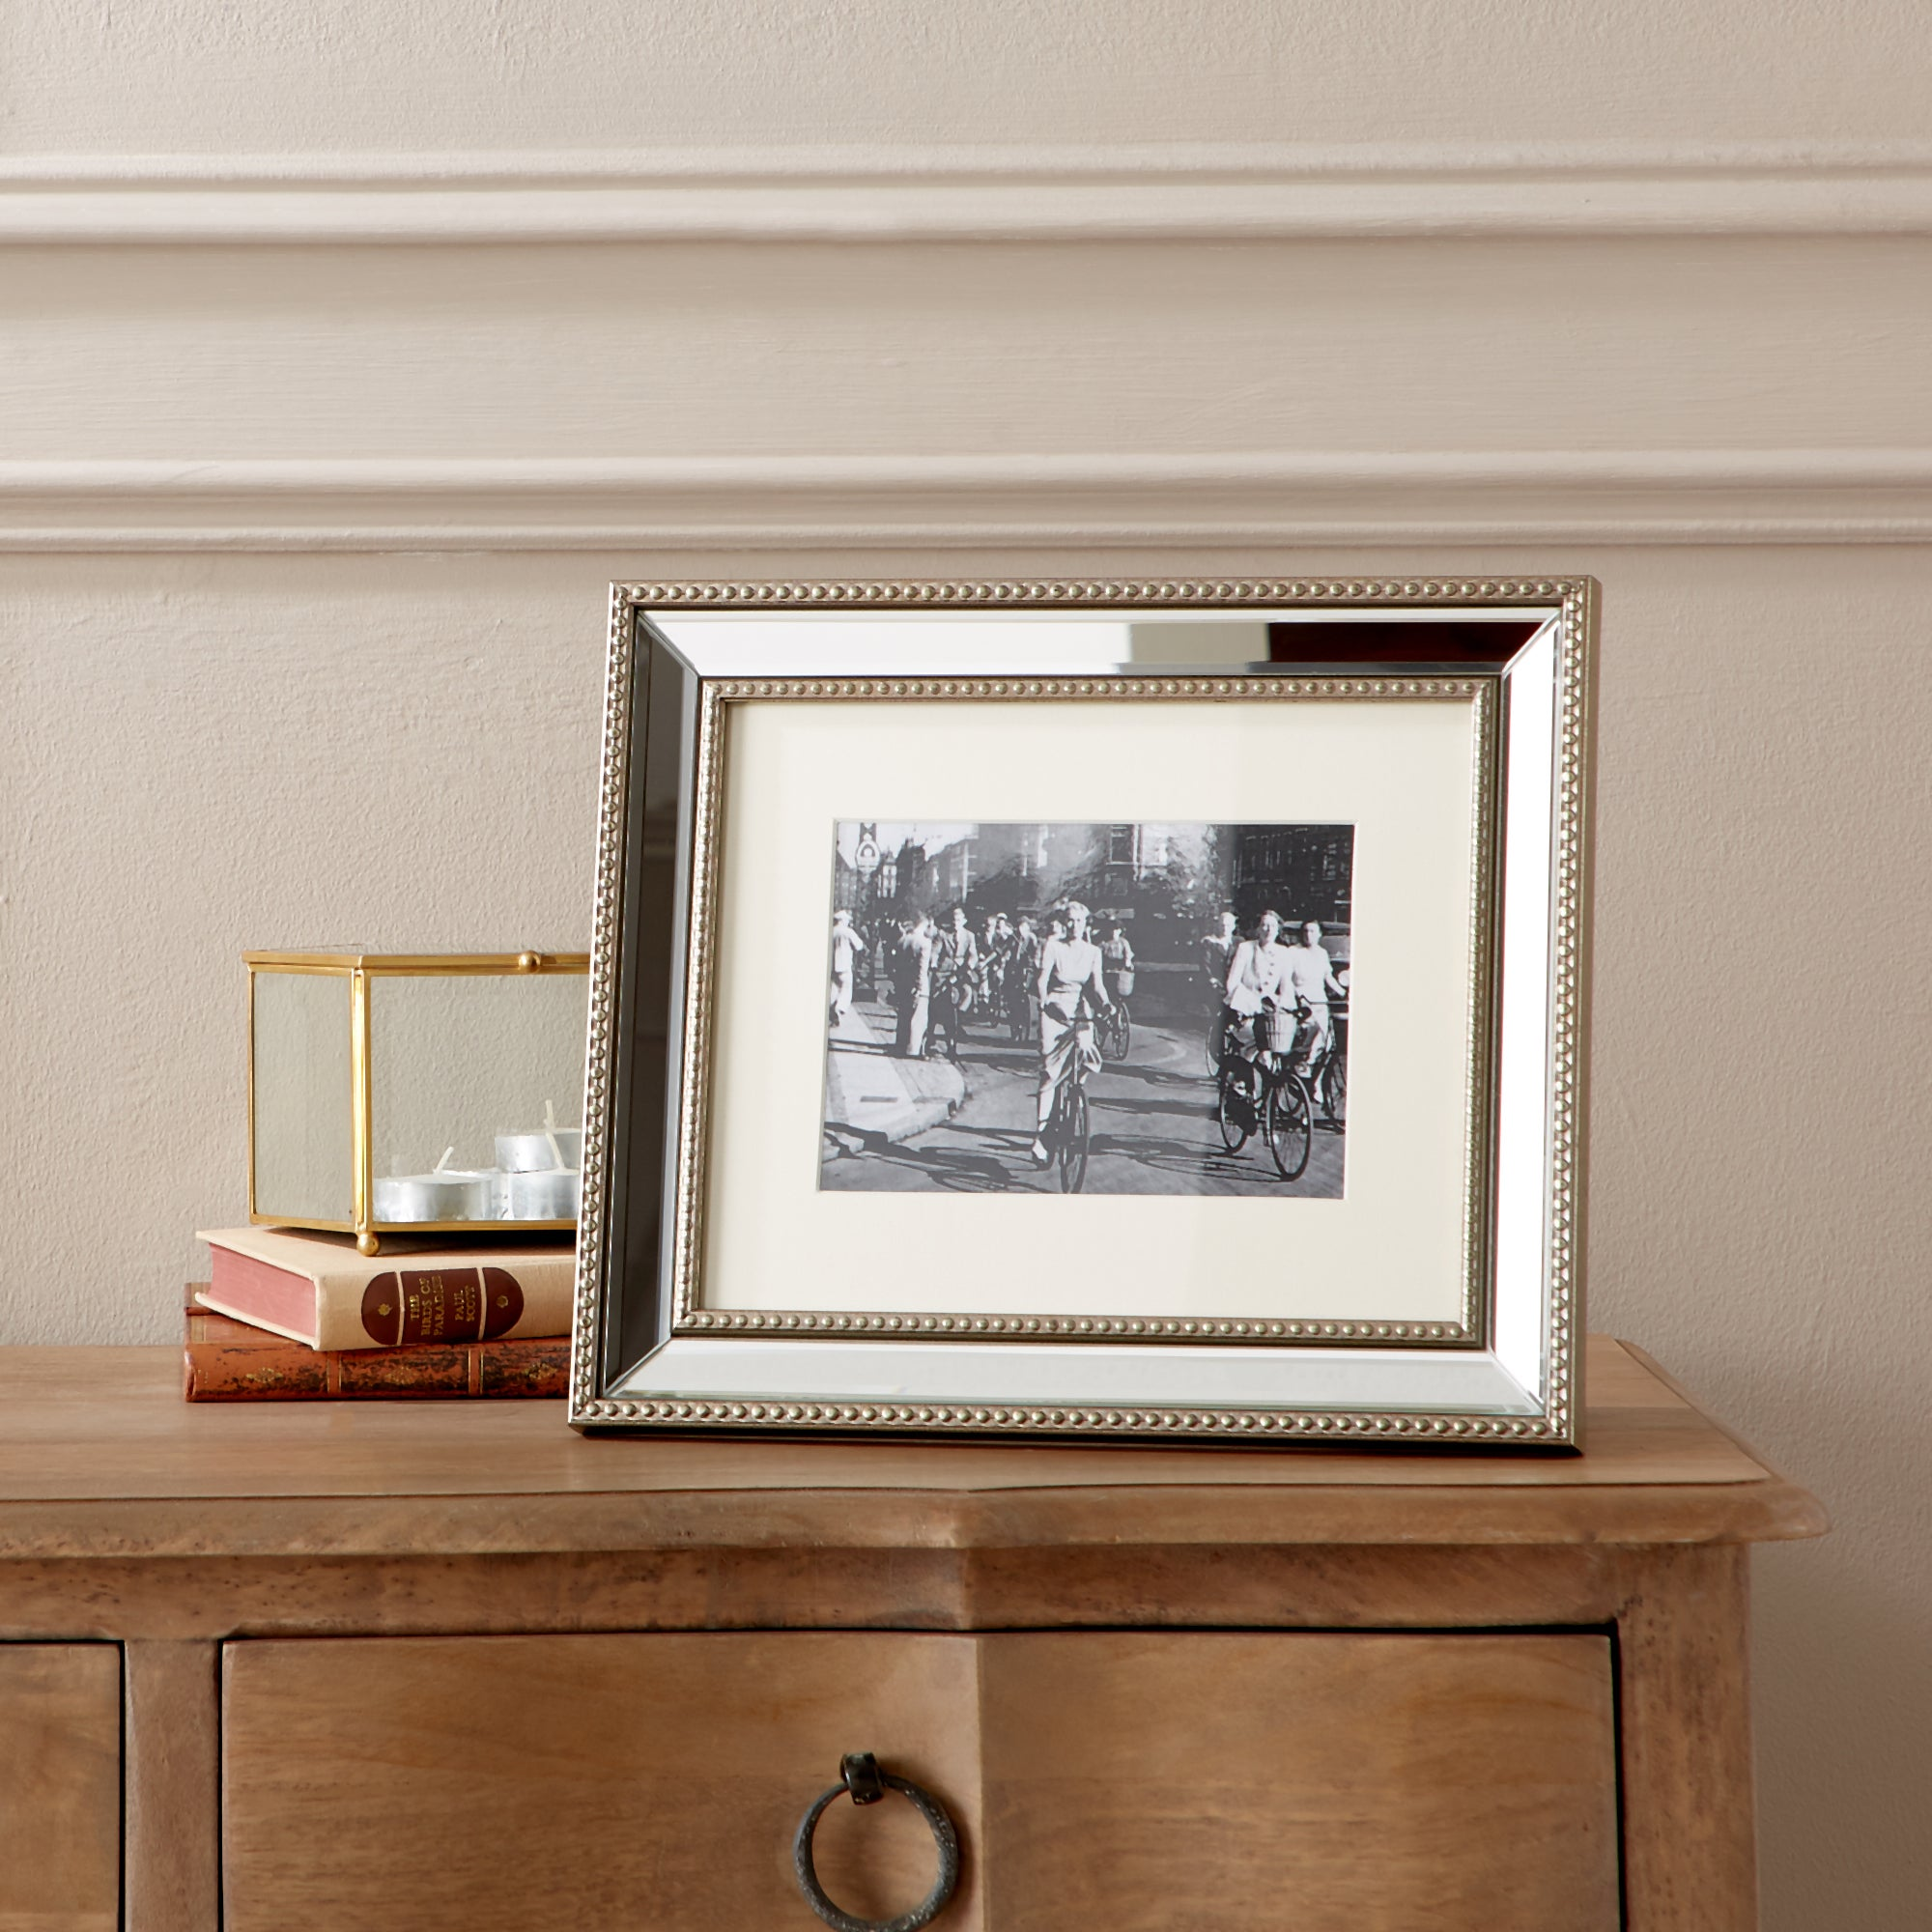 Dorma Champagne Mirrored Photo Frame